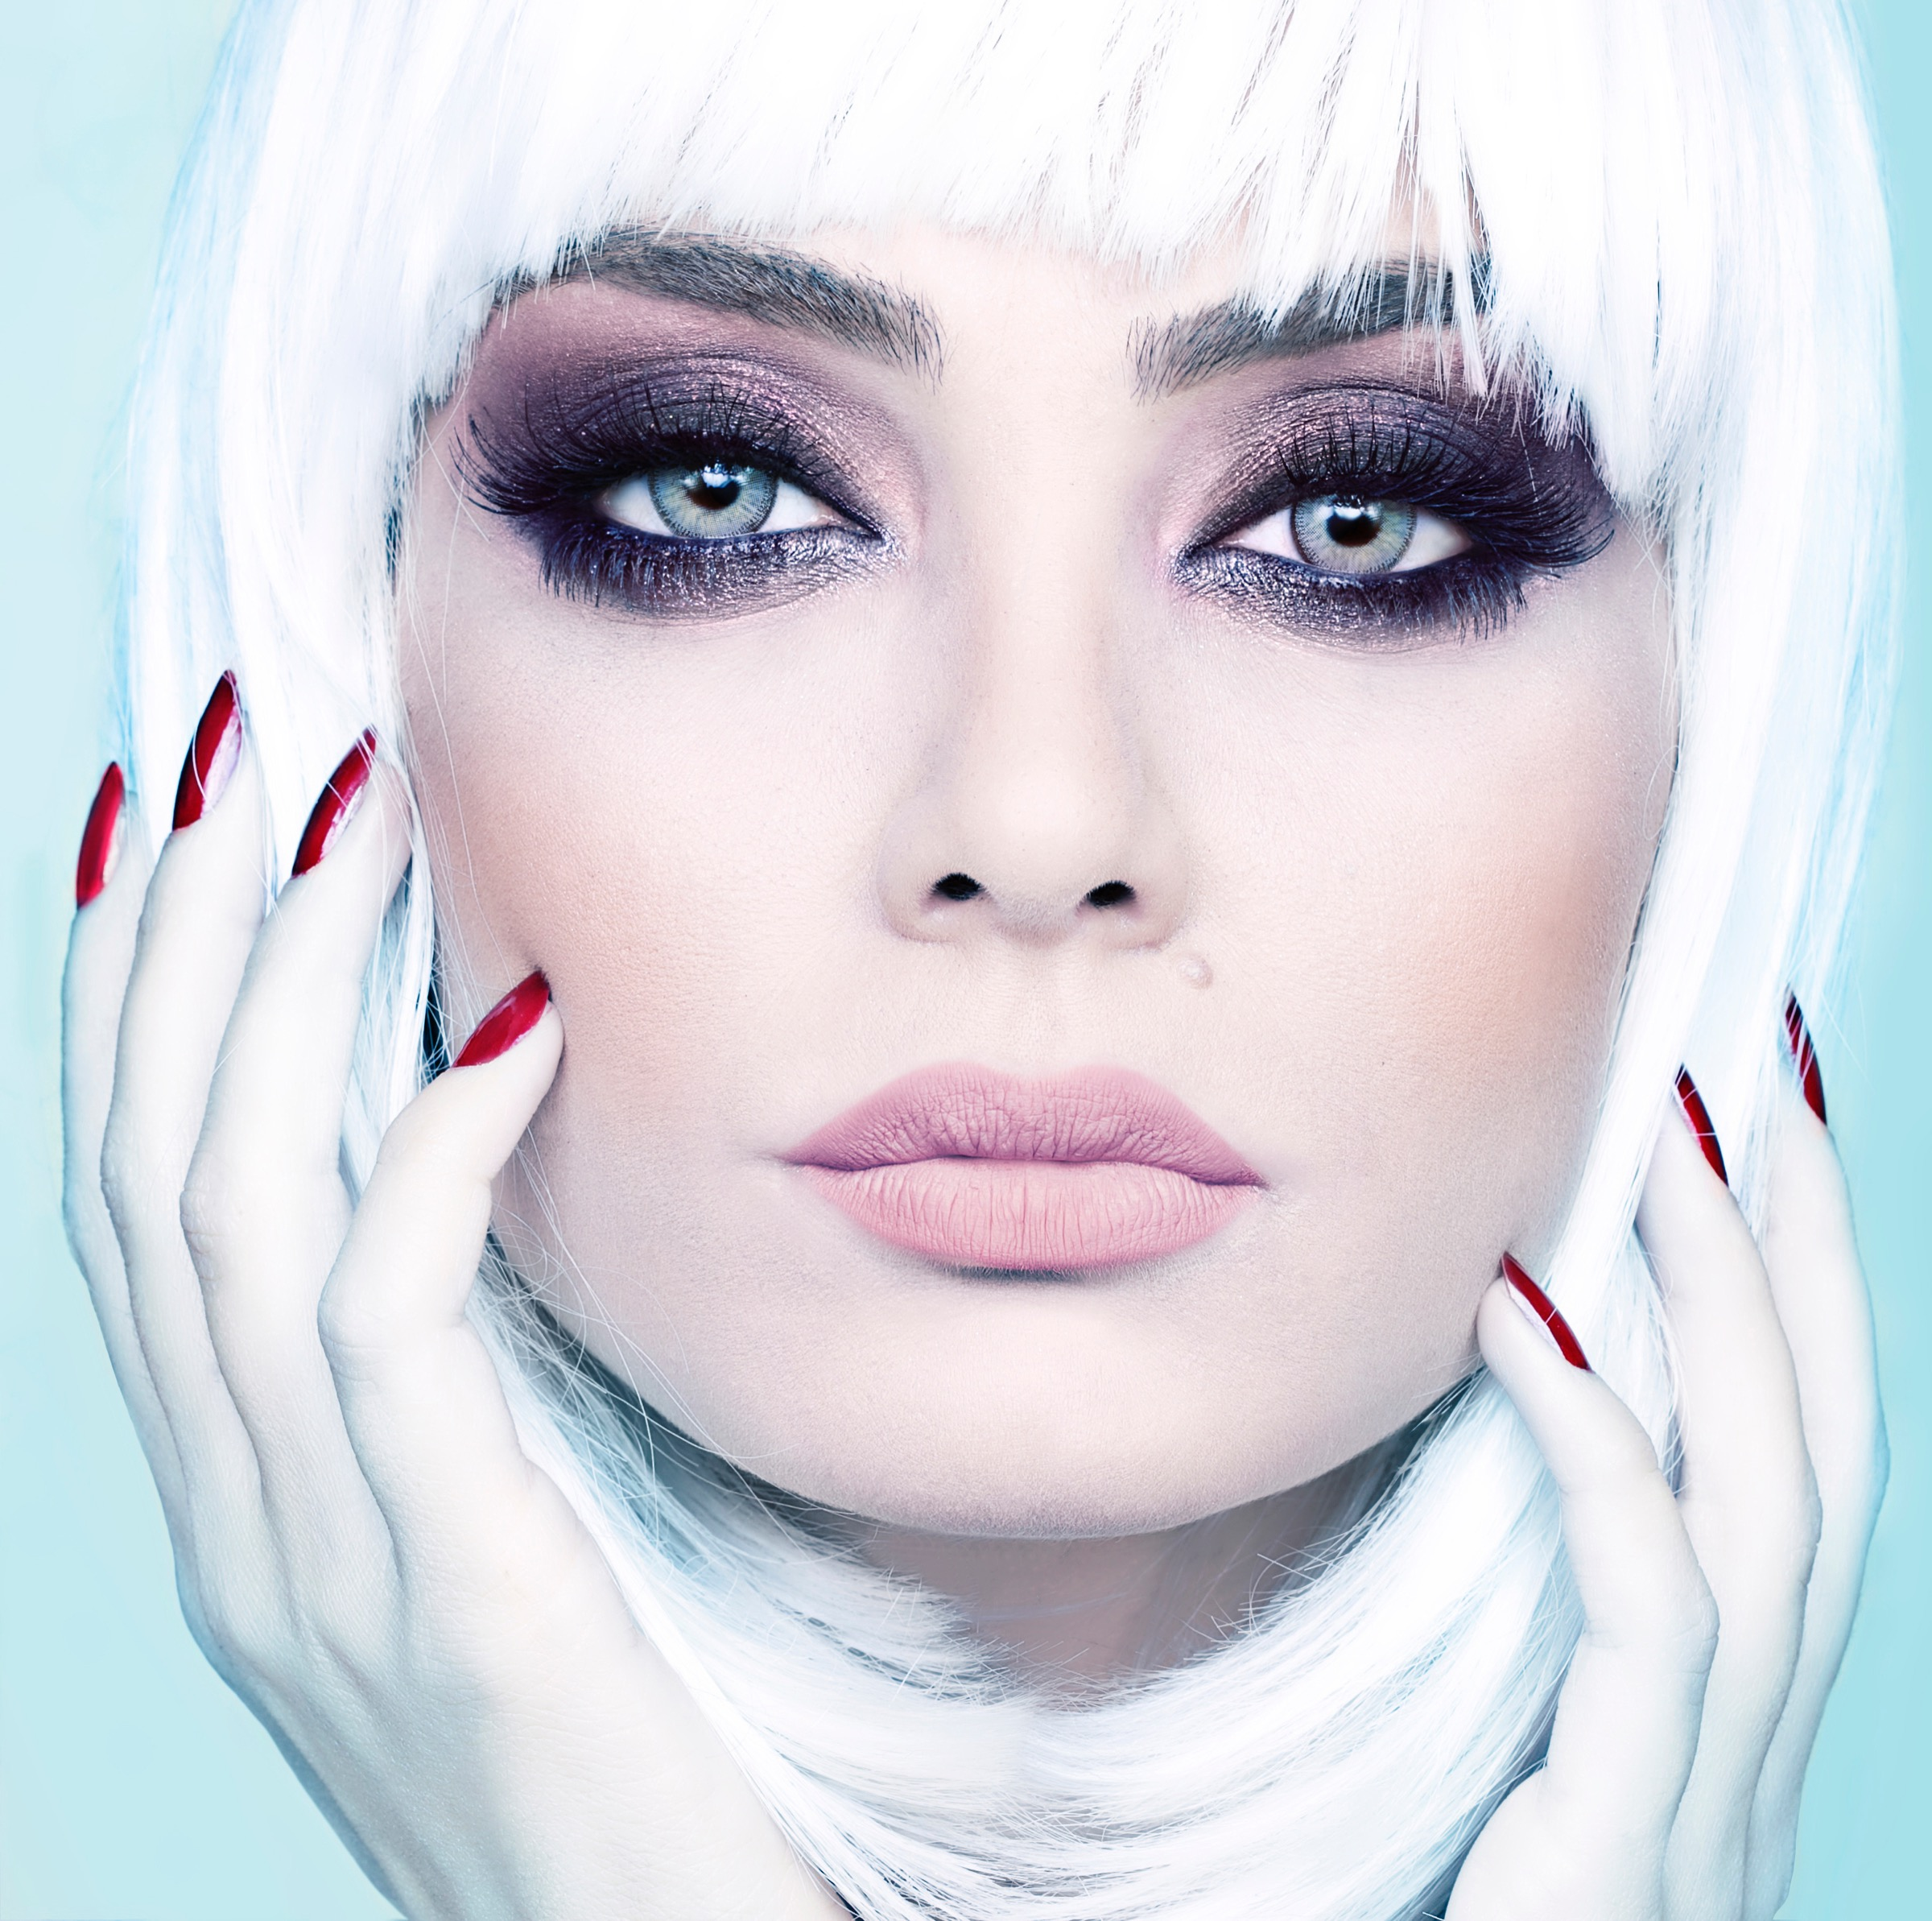 Bassam Fattouh A Pioneer Of The Makeup World Beauty Creations Cosmetics 35 Pro Palette Ilena Is Inspired By Everyone He Works With And Everything Around Him From Fashion Fabrics Shoes To Styles Nature Its All About Fantasy